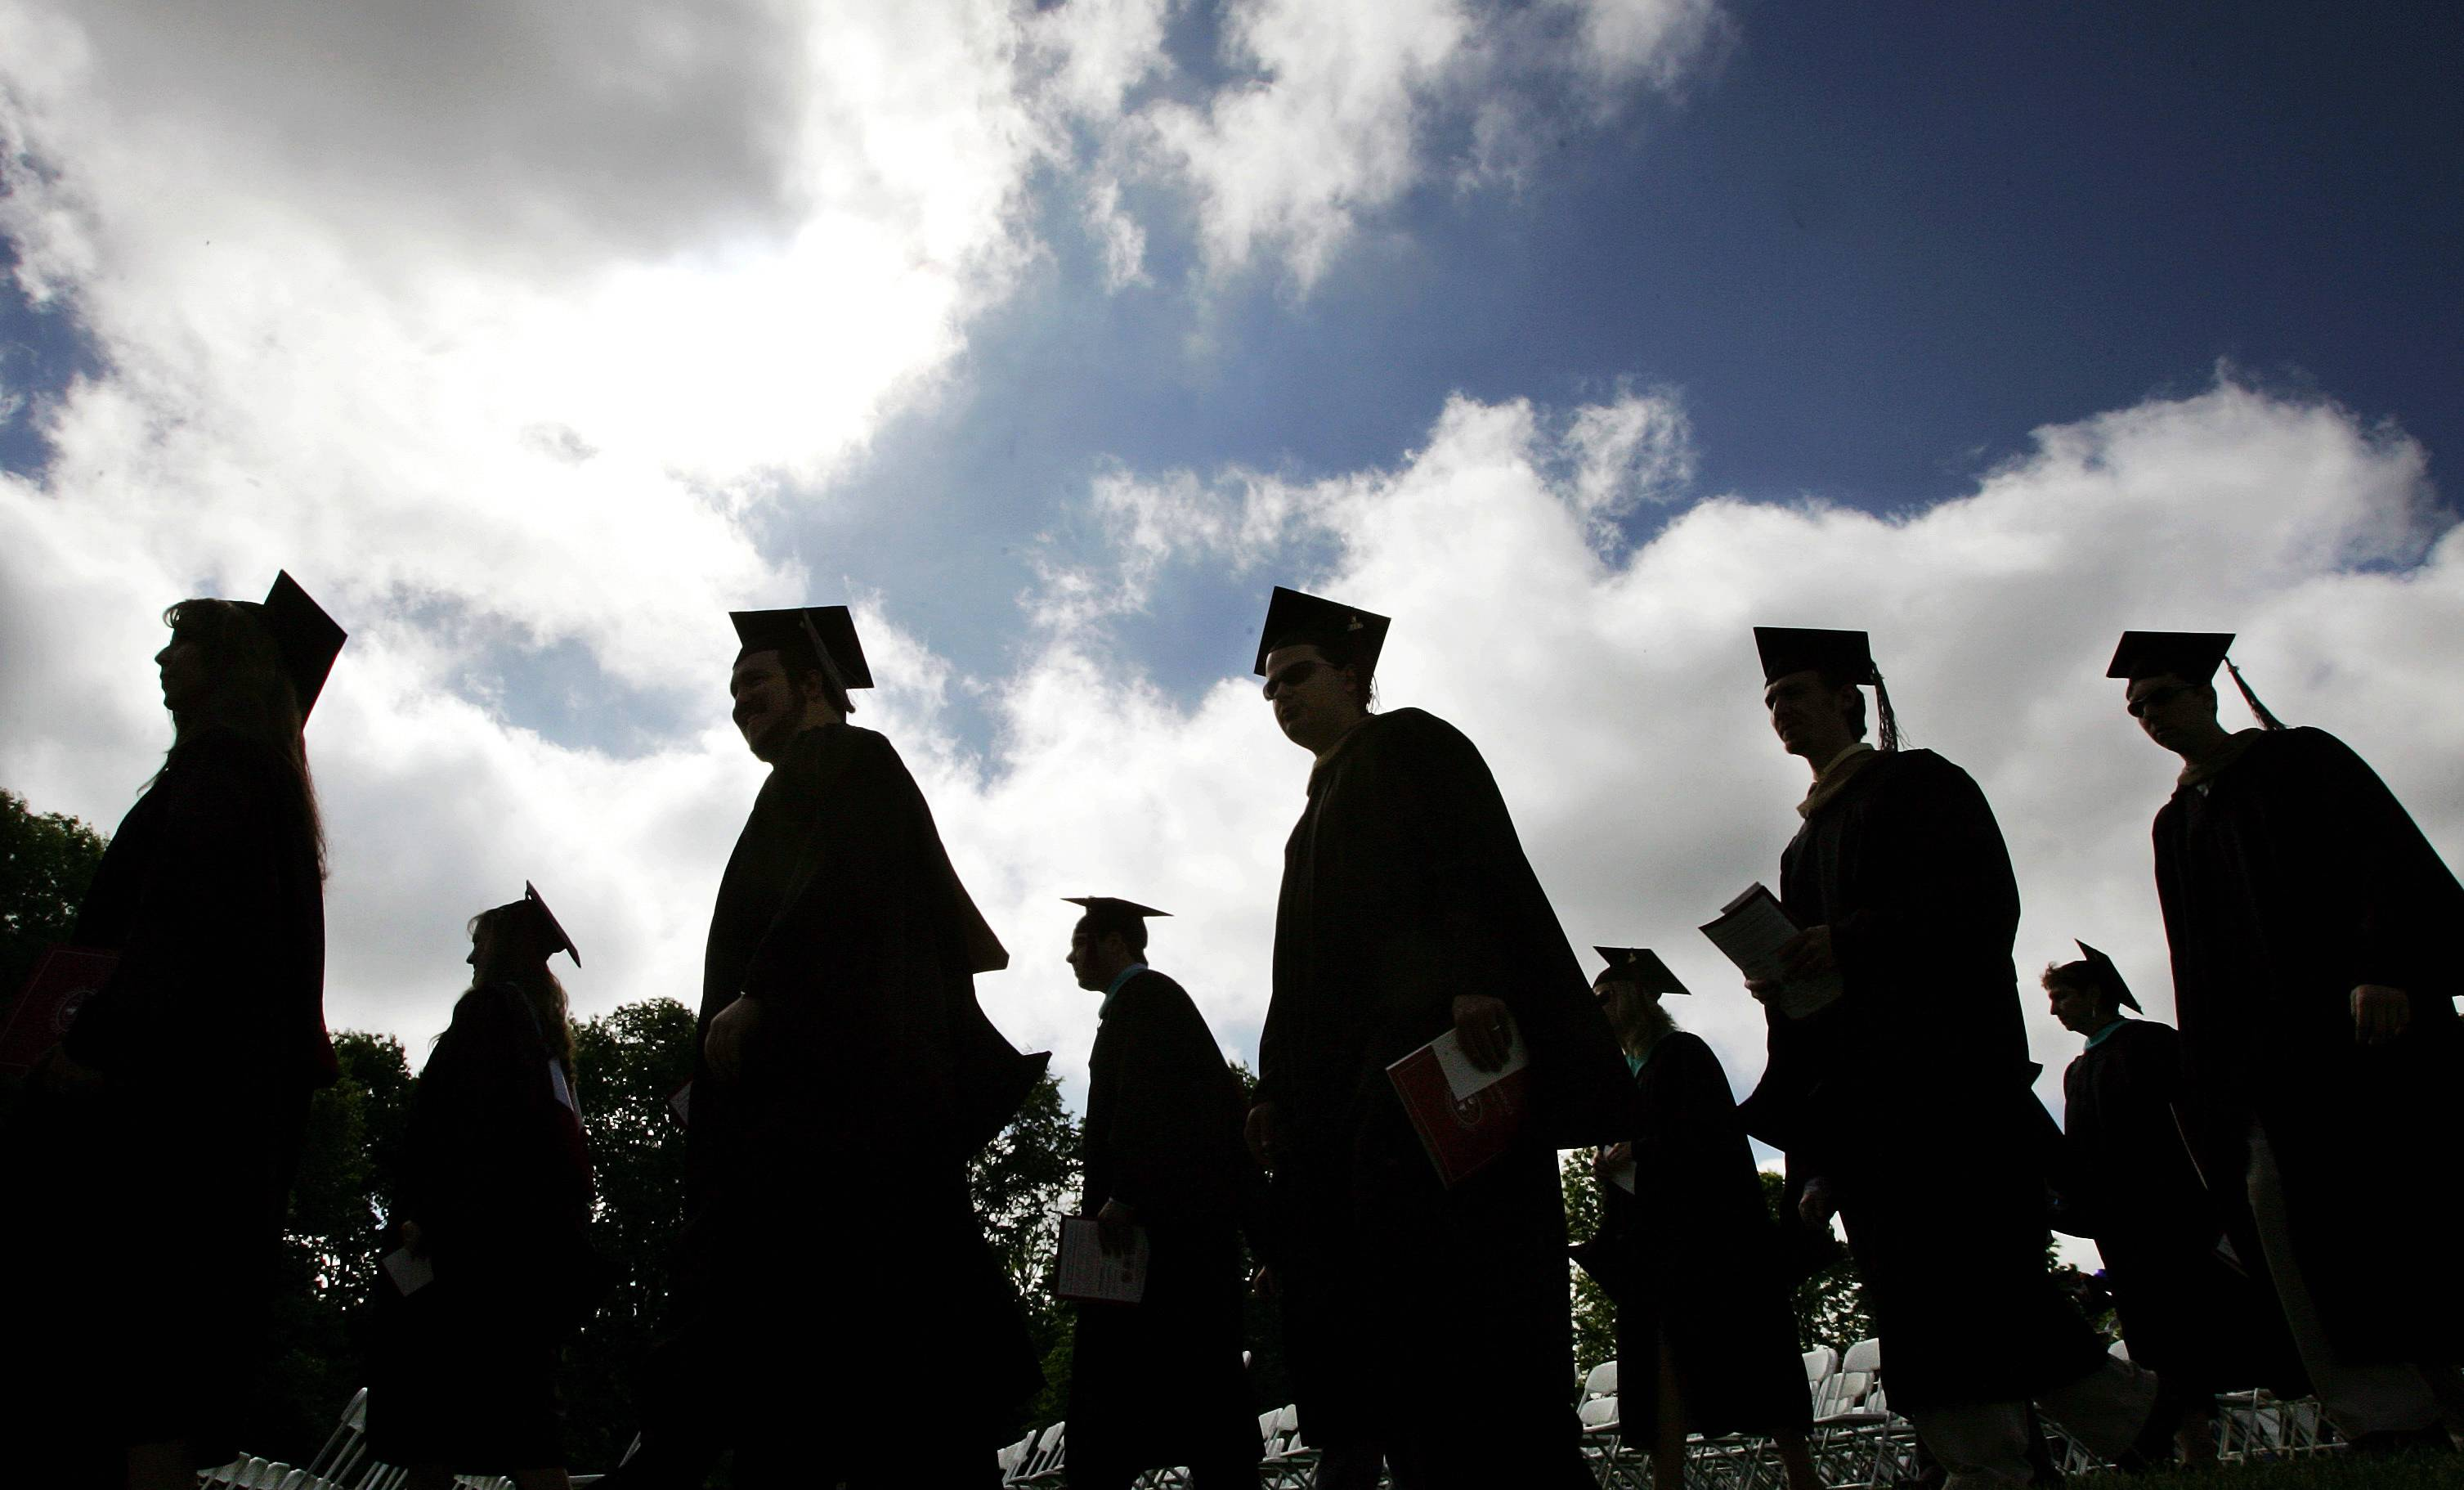 Students drop out of college for a mix of personal, financial and academic reasons, but there are resources for those who want to finally earn a degree.